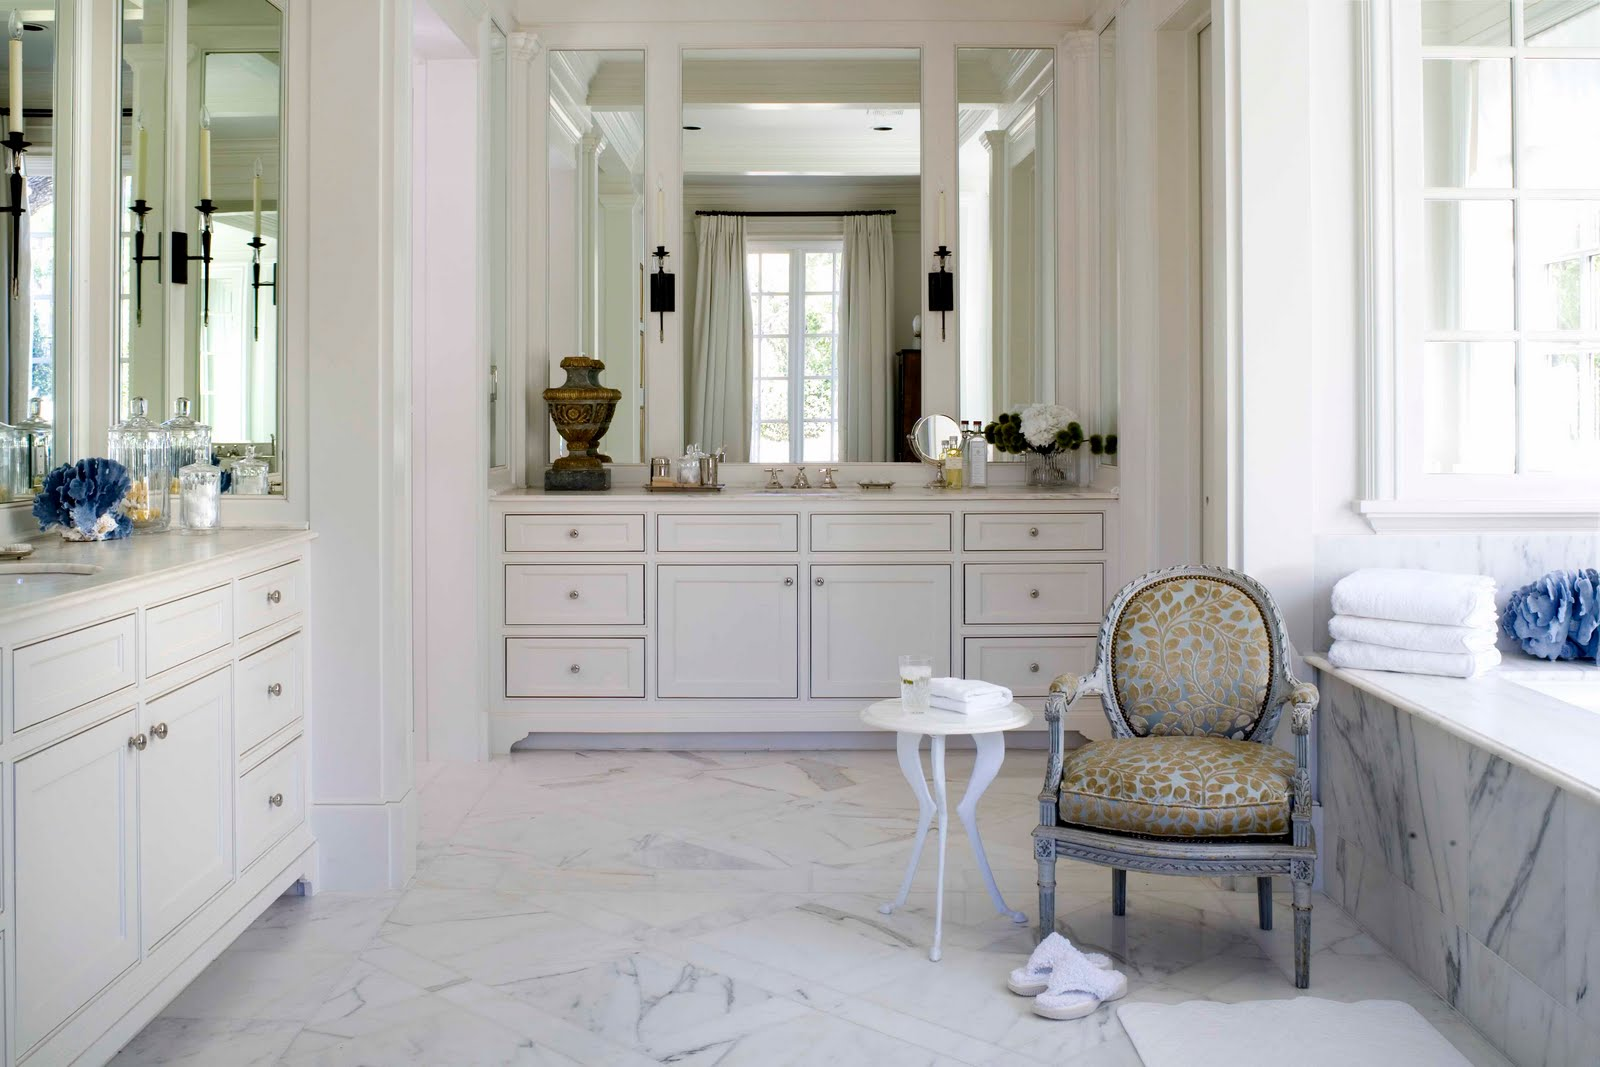 bathroom-fancy-hgtv-bathroom-remodeling-ideas-with-white-granite-floor-and-bathtub-cover-wooden-foot-stool-also-vintage-upholstered-chair-with-leopard-fabric-pattern-top-hgtv-bathroom-remodeling-idea